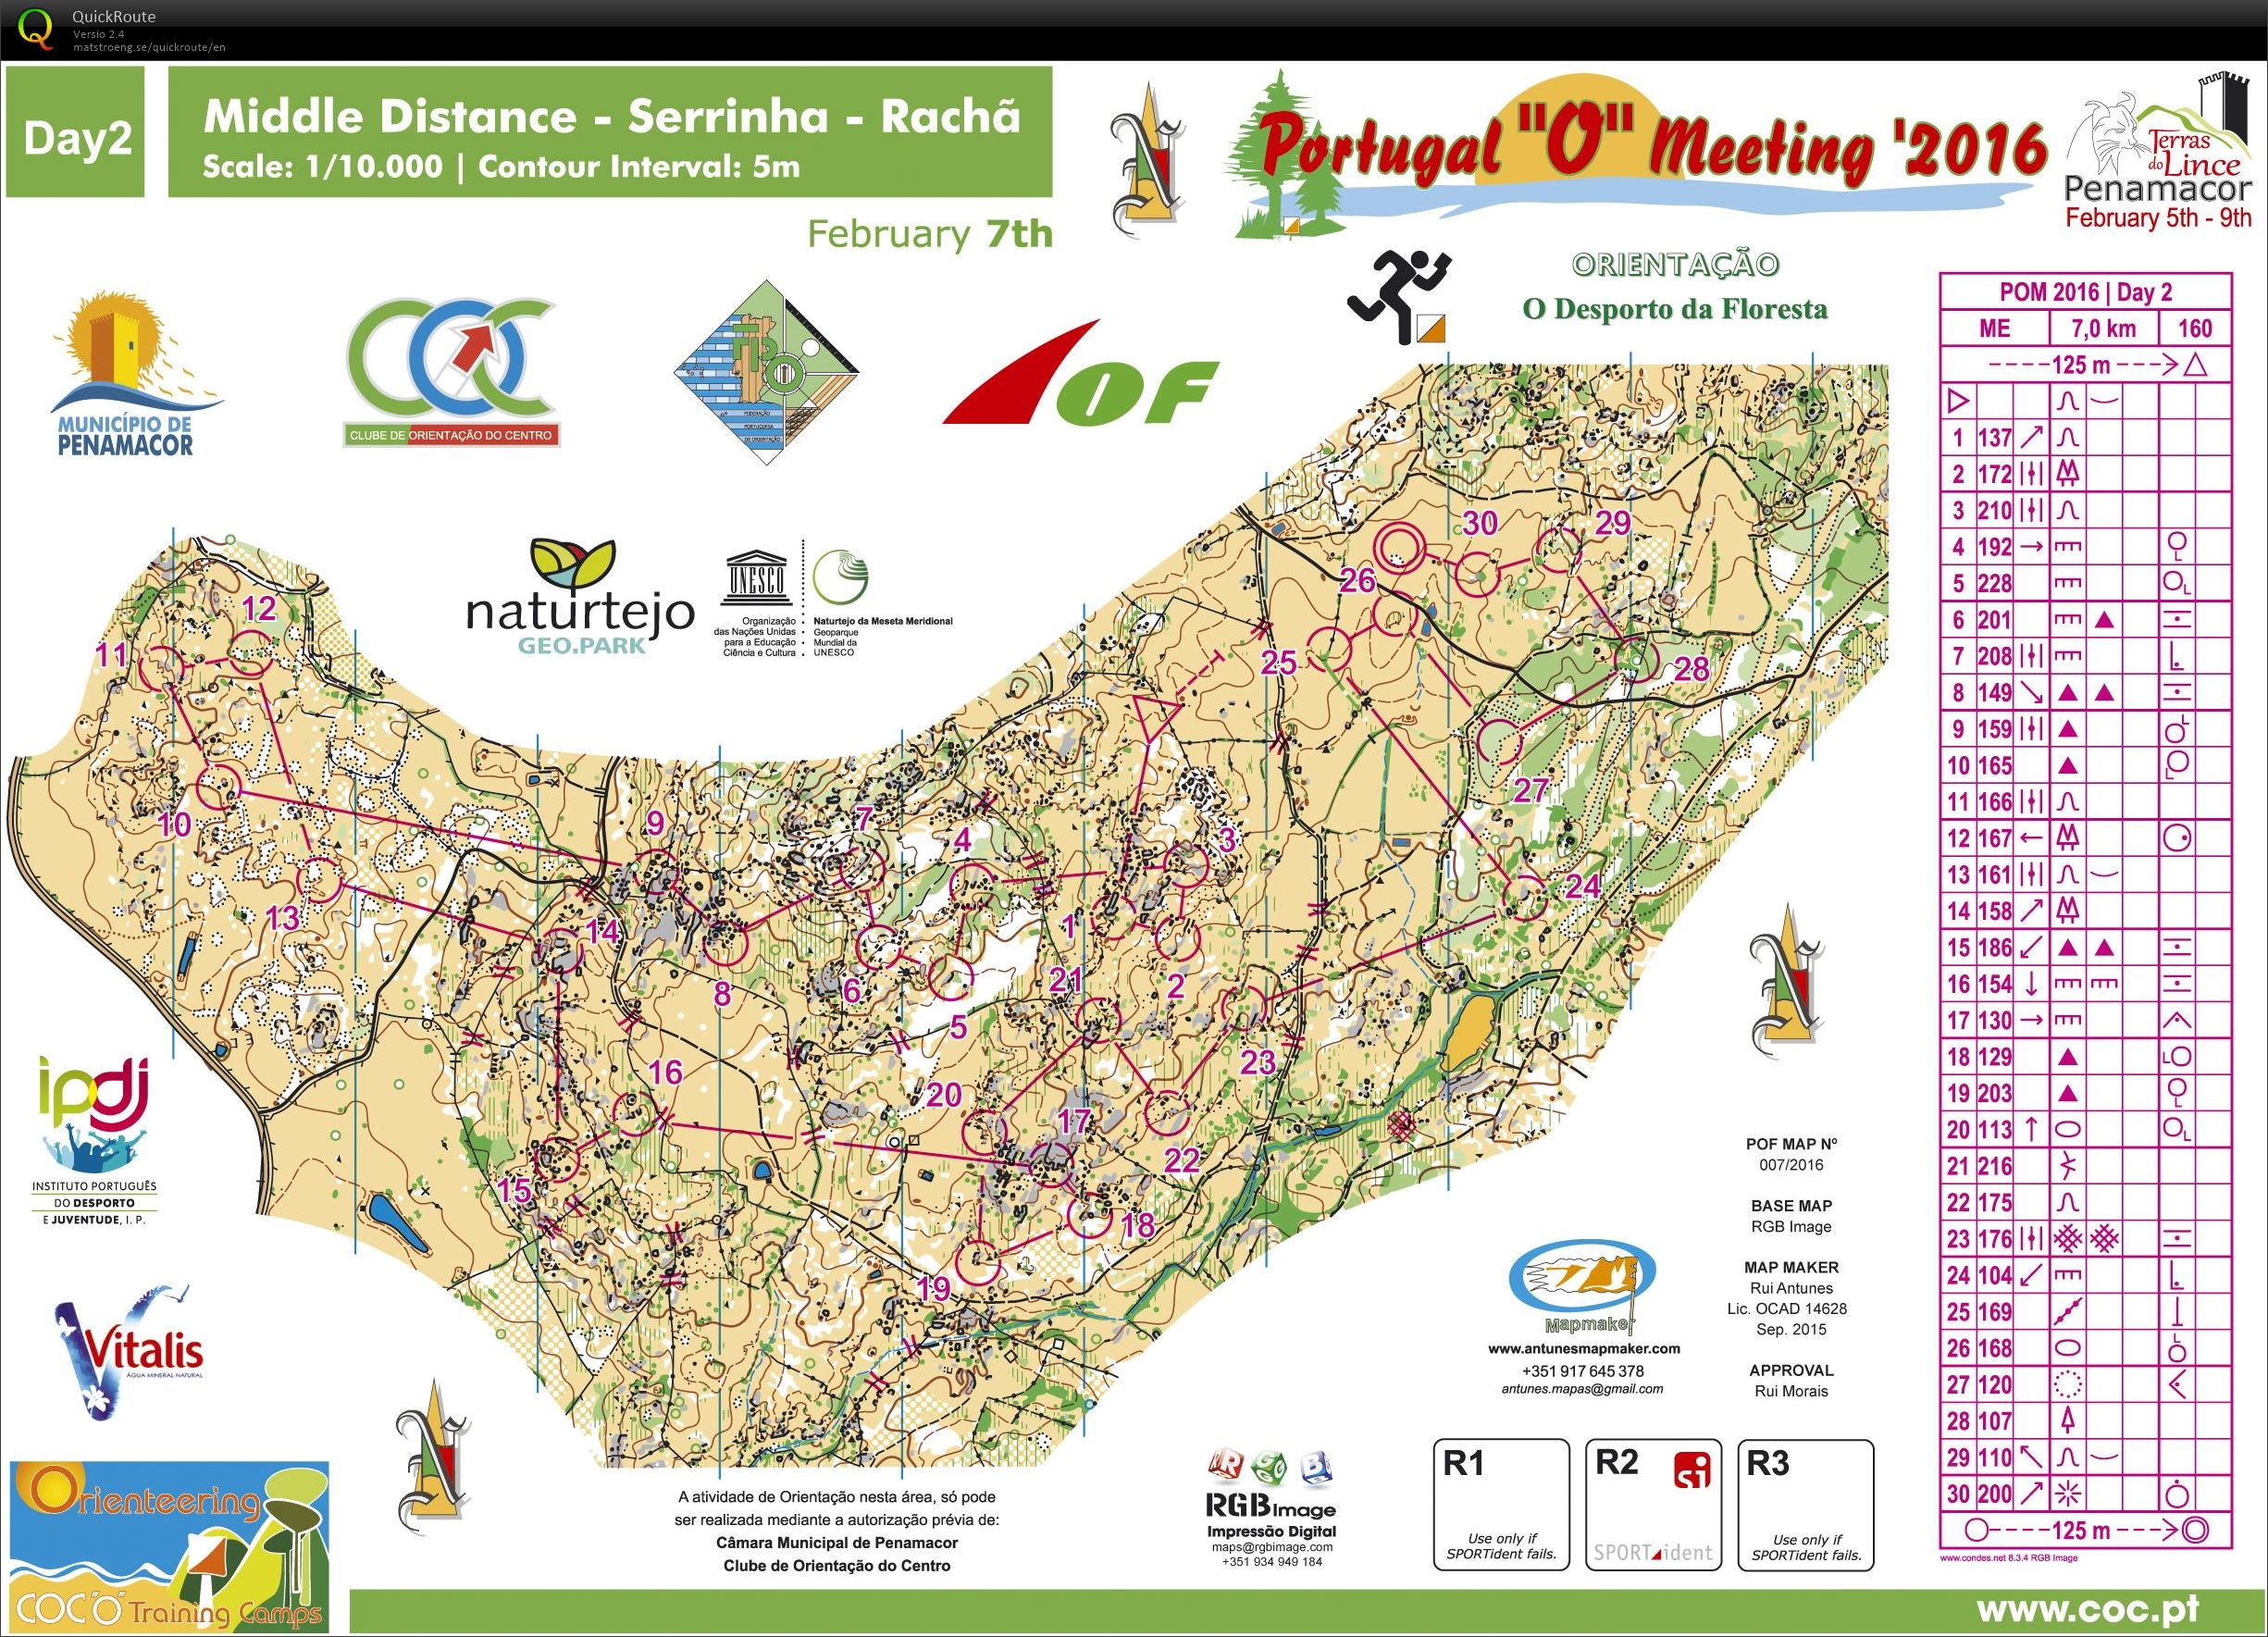 Portugal O Meeting 2 Pv February 7th 2016 Orienteering Map